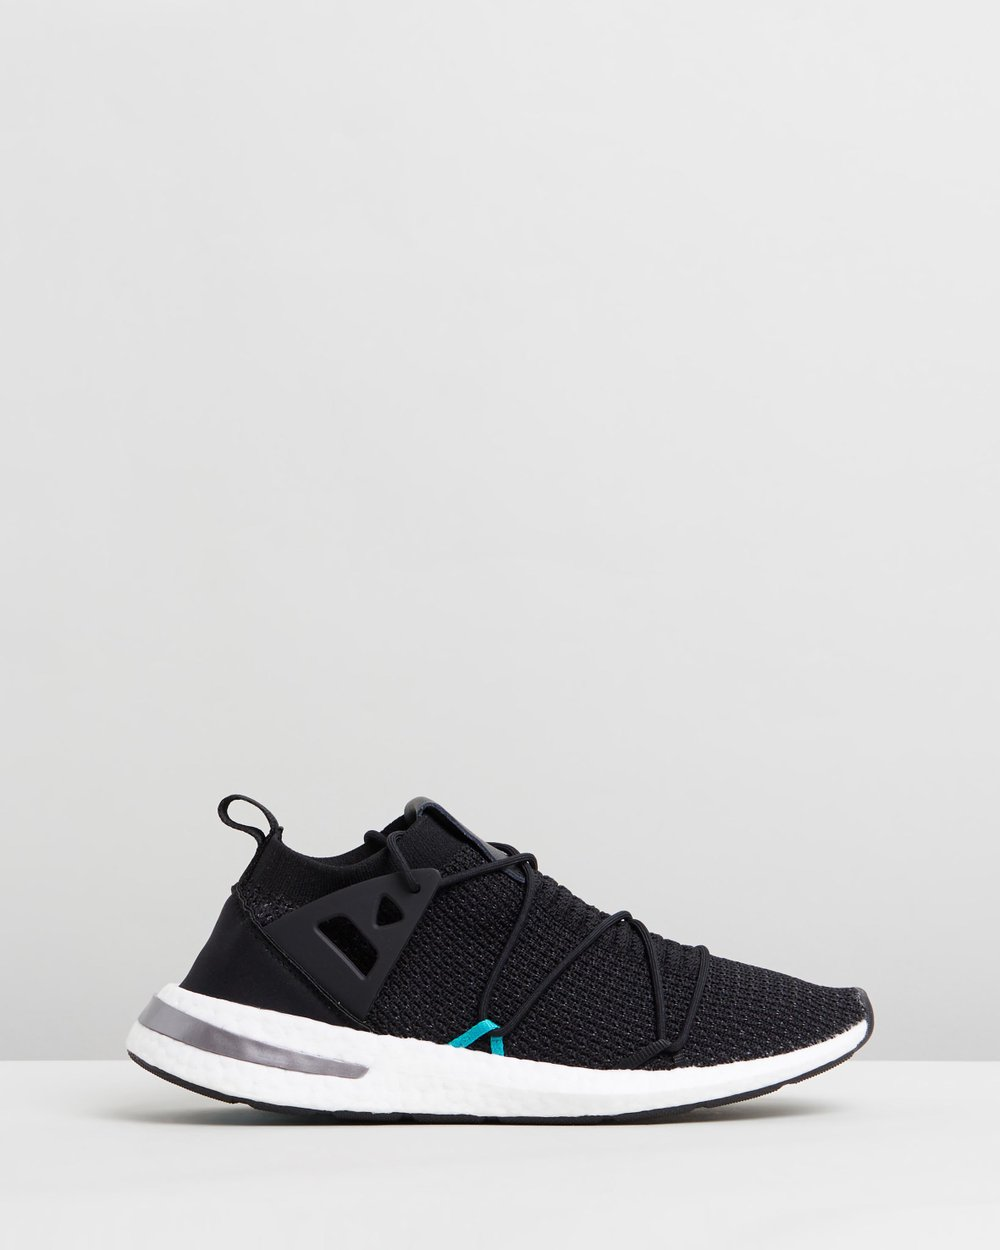 reputable site 7f51a 67315 Arkyn Primeknit - Womens by adidas Originals Online  THE ICONIC   Australia